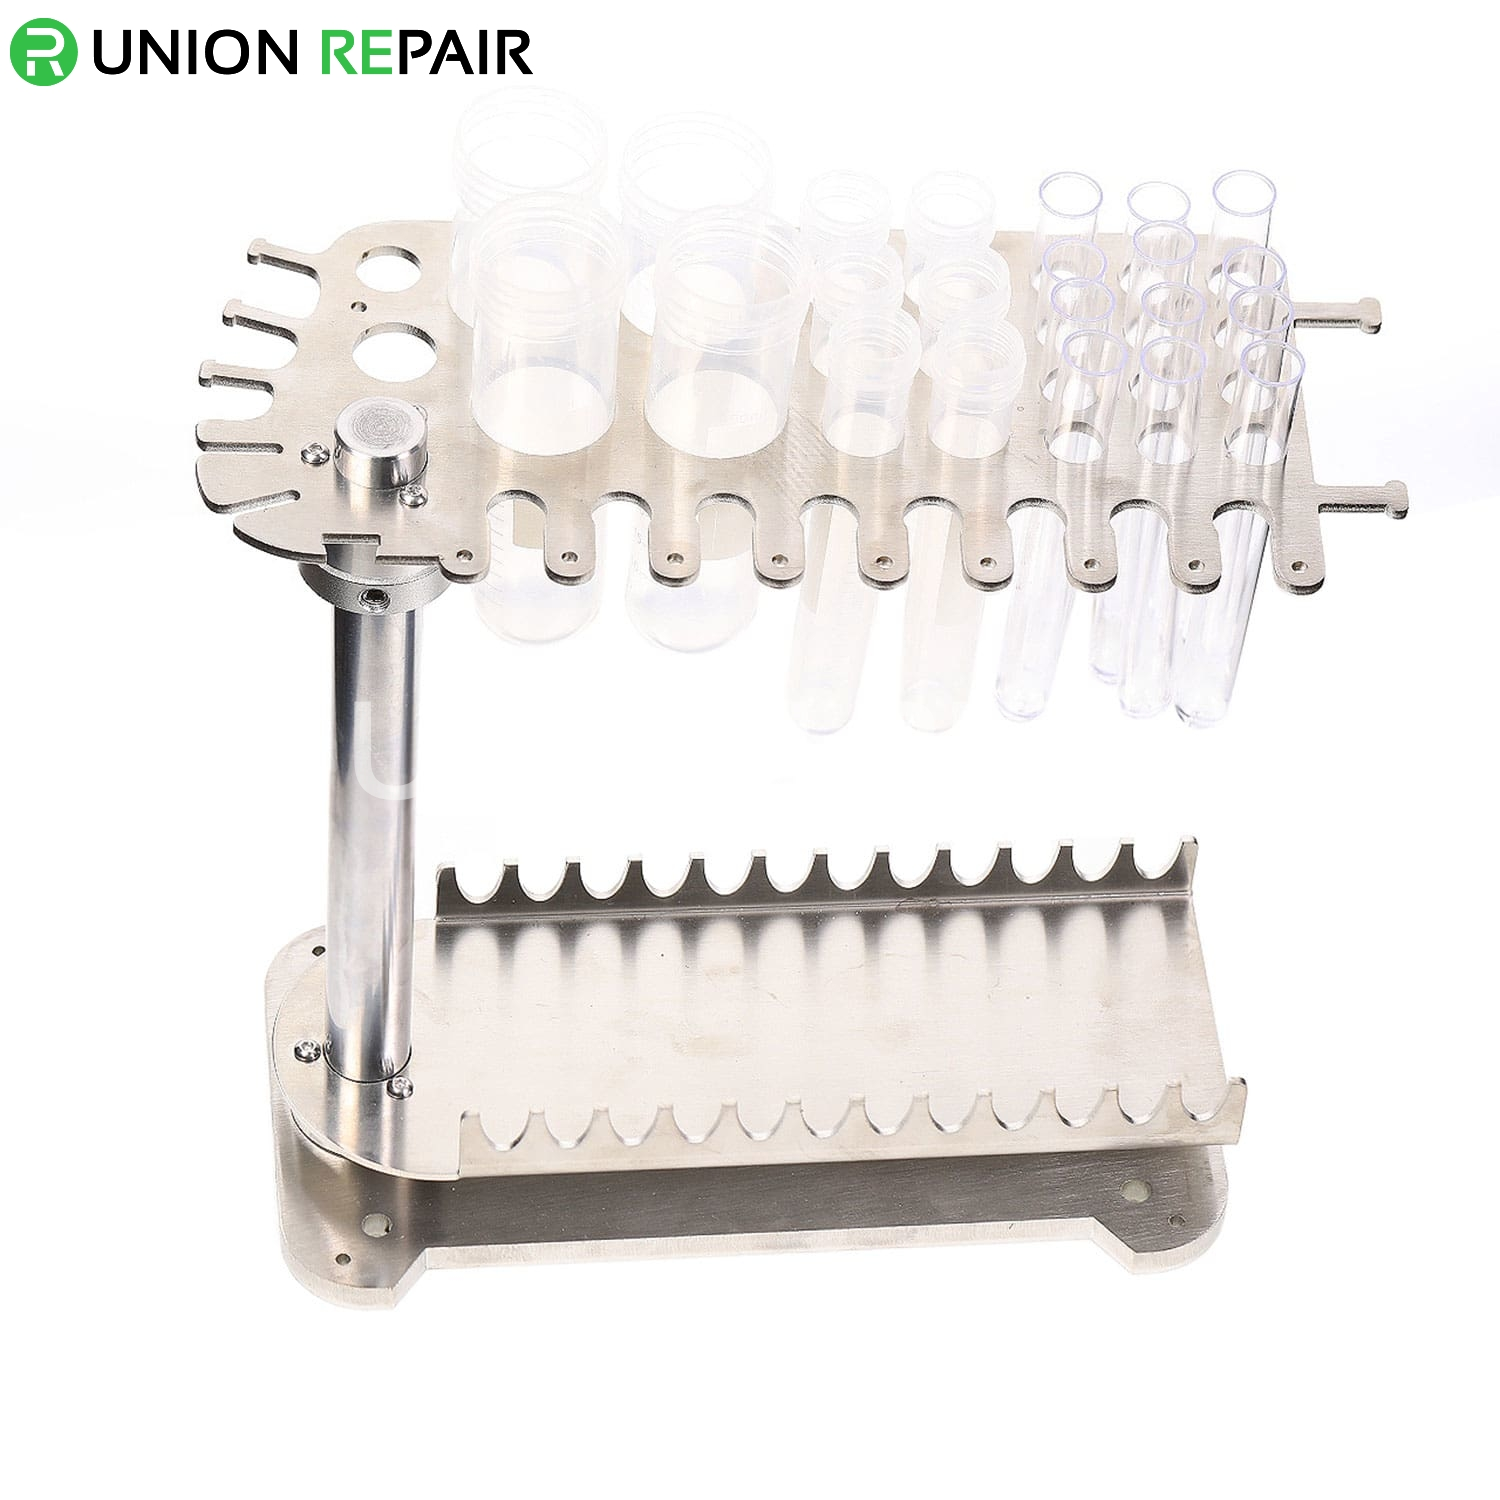 Aluminum Alloy Rotatable Screwdrivers Tool Weapon Rack, fig. 7